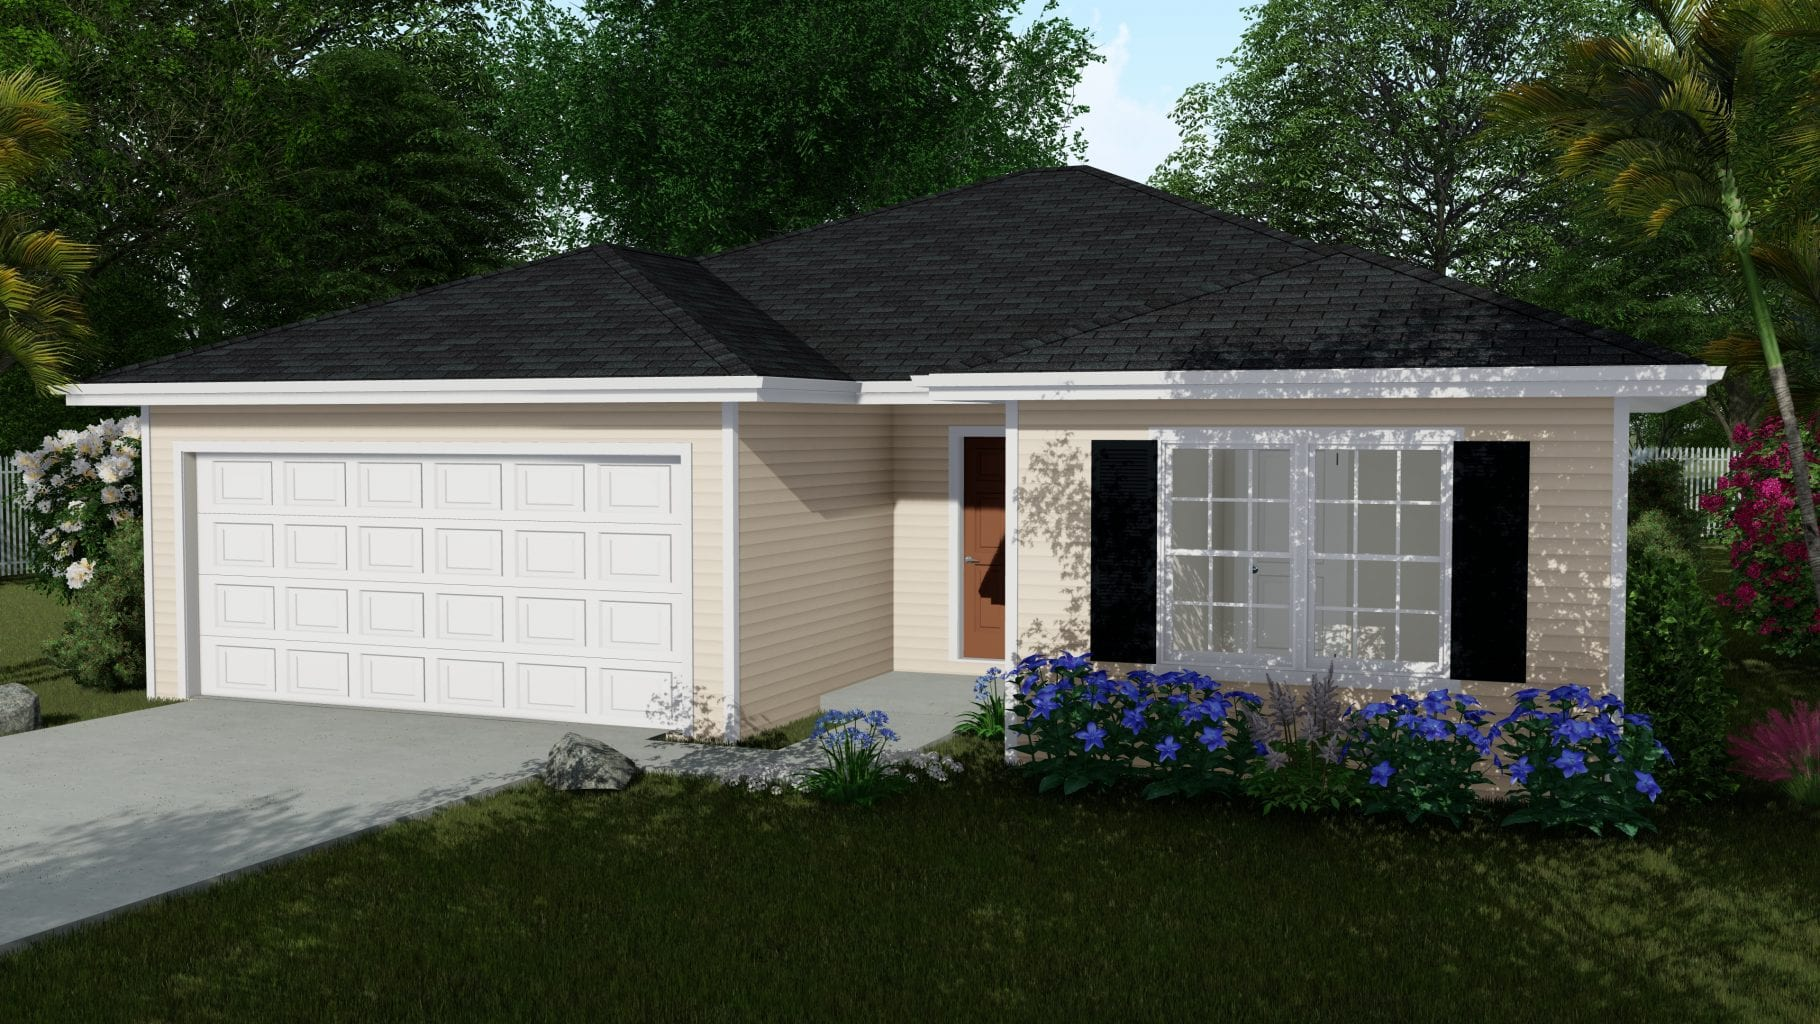 1209 sq ft rendering